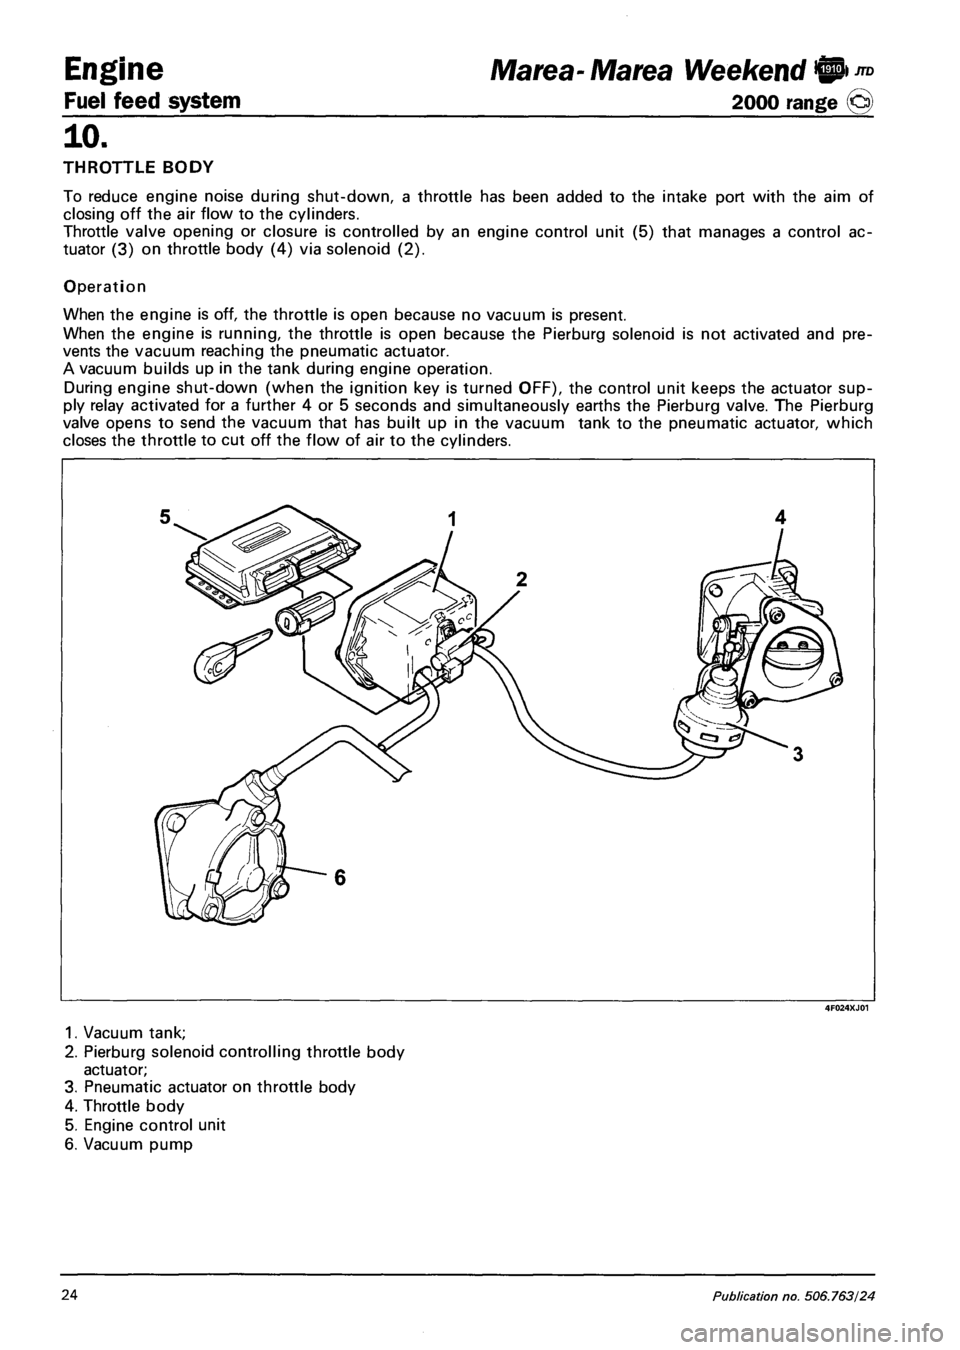 Fiat Marea 2001 1 G Workshop Manual  330 Pages   Page 110